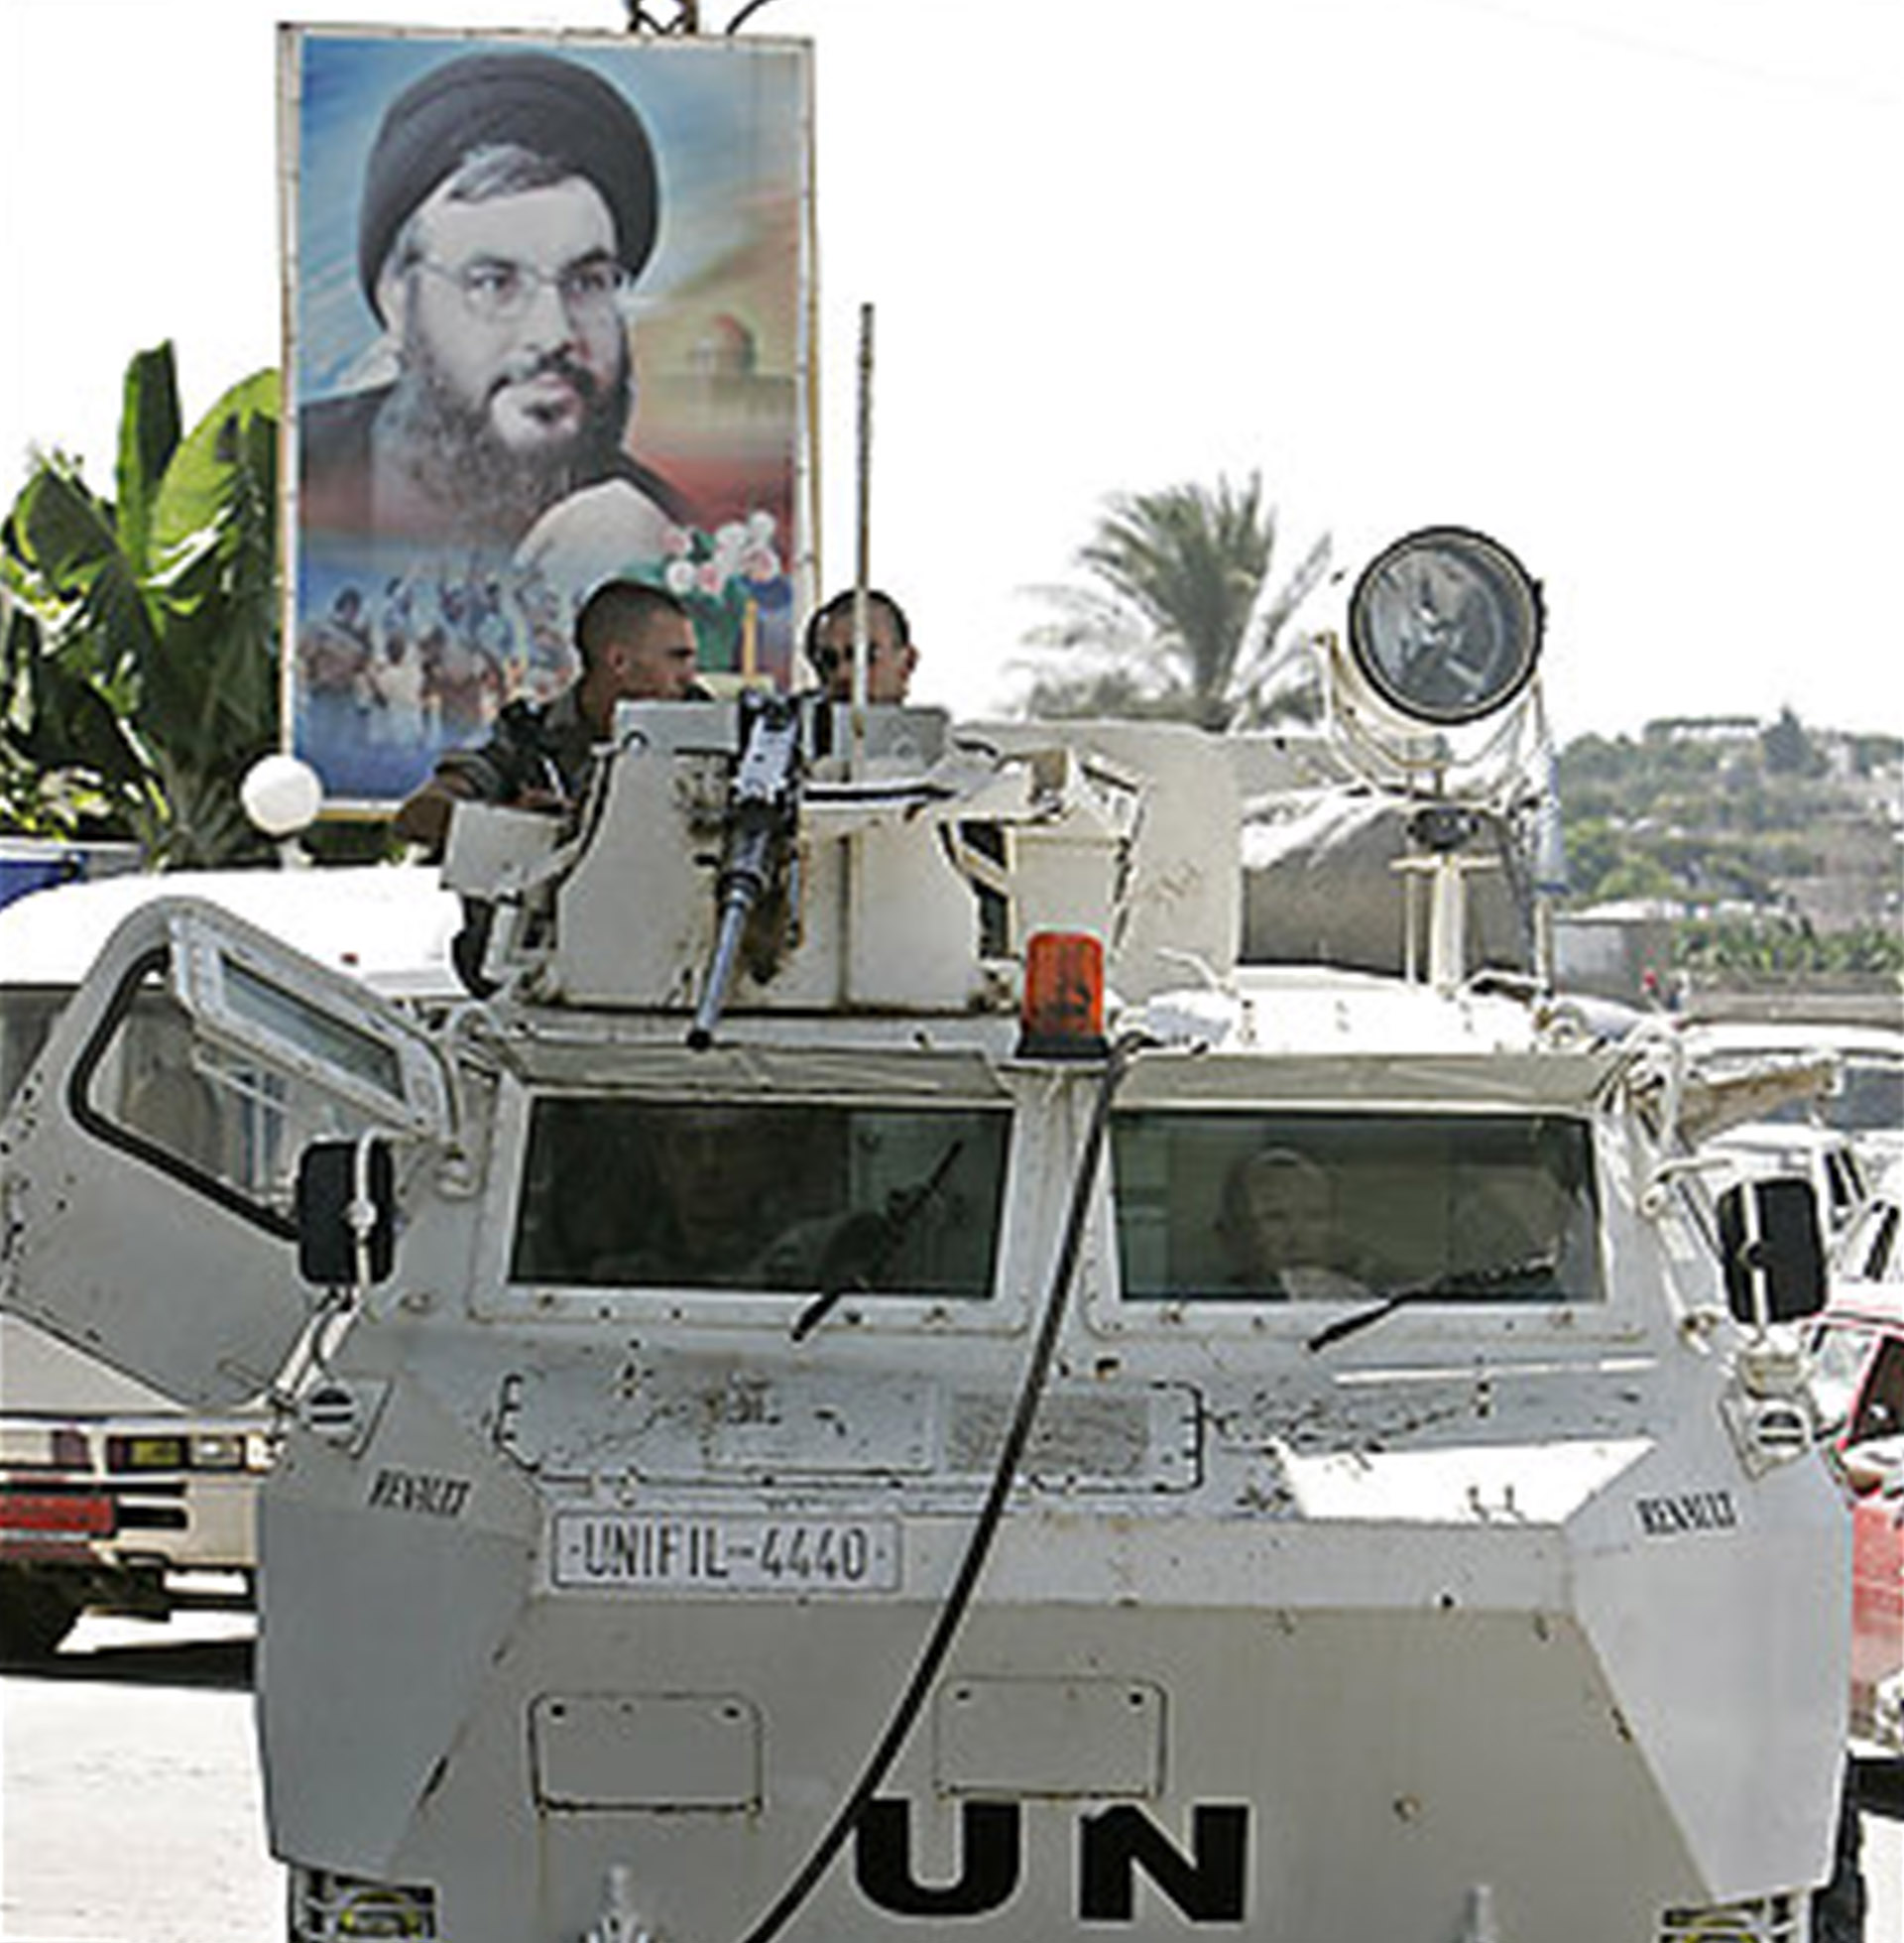 Backdropped by a poster of Hezbollah leader Sheik Hassan Nasrallah, United Nations peacekeepers from France, sit atop their armoured personnel carrier in the outskirts of the southern port city of Tyre, Lebanon, Tuesday, Aug. 15, 2006. The international community was scrambling Tuesday to put together a fortified U.N. peacekeeping force for southern Lebanon, as Israeli forces began a pullout that many fear could create a dangerous vacuum. (AP Photo/Lefteris Pitarakis)